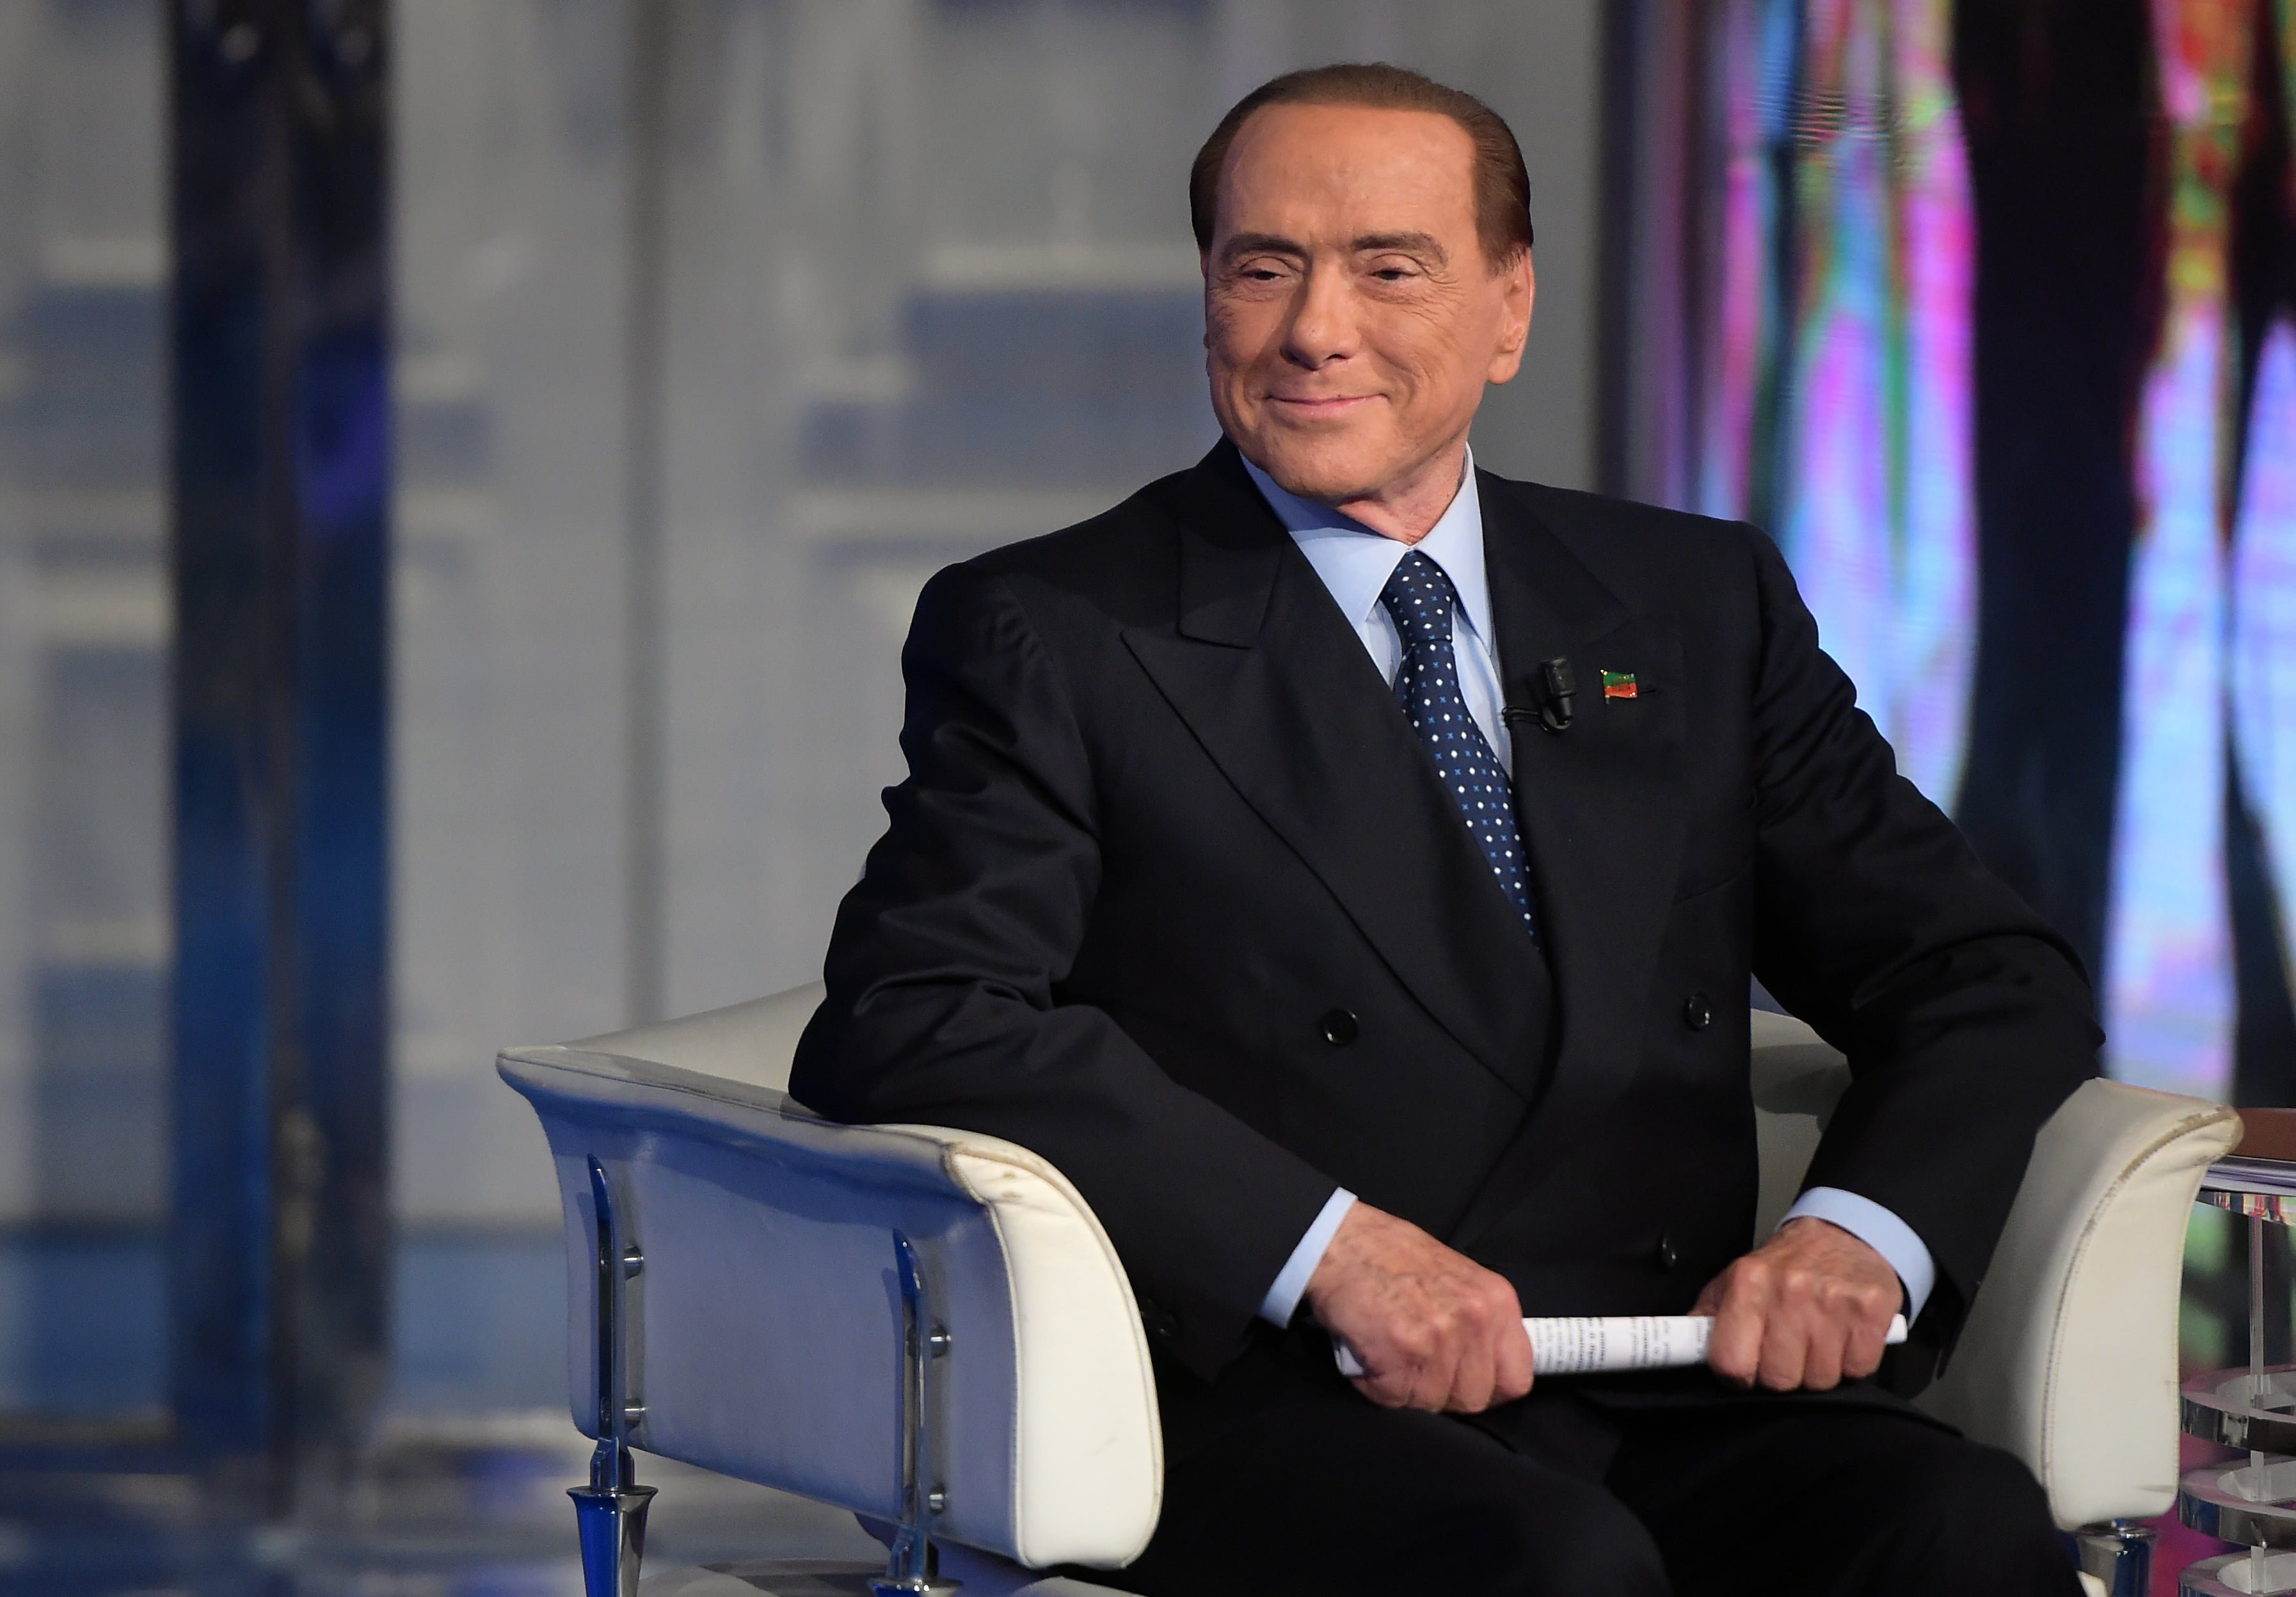 Former Italian Prime Minister Silvio Berlusconi attends the political TV show Porta A Porta at RAI's broadcast studios in Rome, Italy on November 16, 2017. At age 81, Berlusconi hopes to make a political comeback as leader of a center-right coalition in Italy's election next year. Photo by Eric Vandeville/ABACAPRESS.COM FOT. ABACA/NEWSPIX.PL POLAND ONLY! --- Newspix.pl *** Local Caption *** www.newspix.pl mail us: info@newspix.pl call us: 0048 022 23 22 222 --- Polish Picture Agency by Ringier Axel Springer Poland